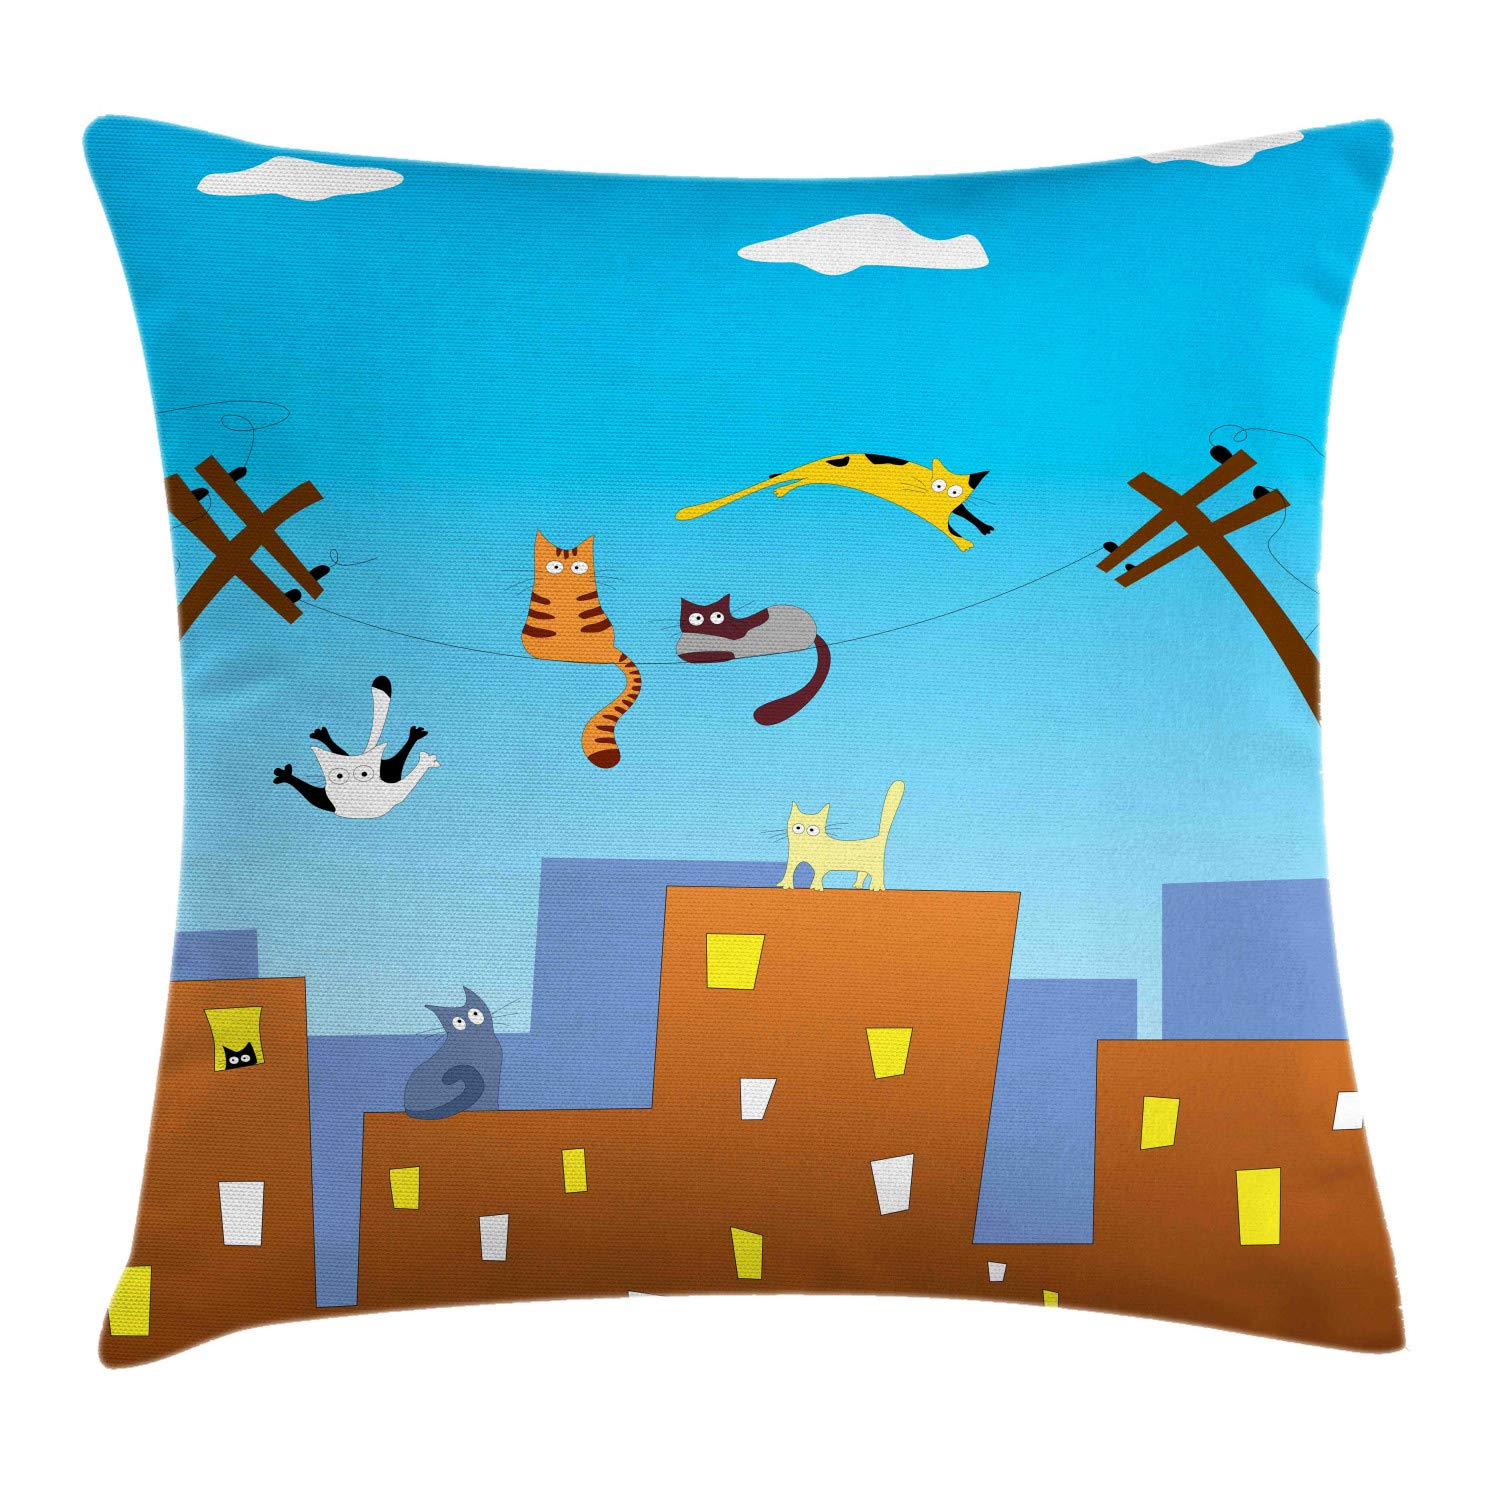 Lunarable Flying Cat Throw Pillow Cushion Cover, Playful Funny Kittens on Wires City Life Apartments Kids Nursery Playroom Theme, Decorative Square Accent Pillow Case, 26'' X 26'', Multicolor